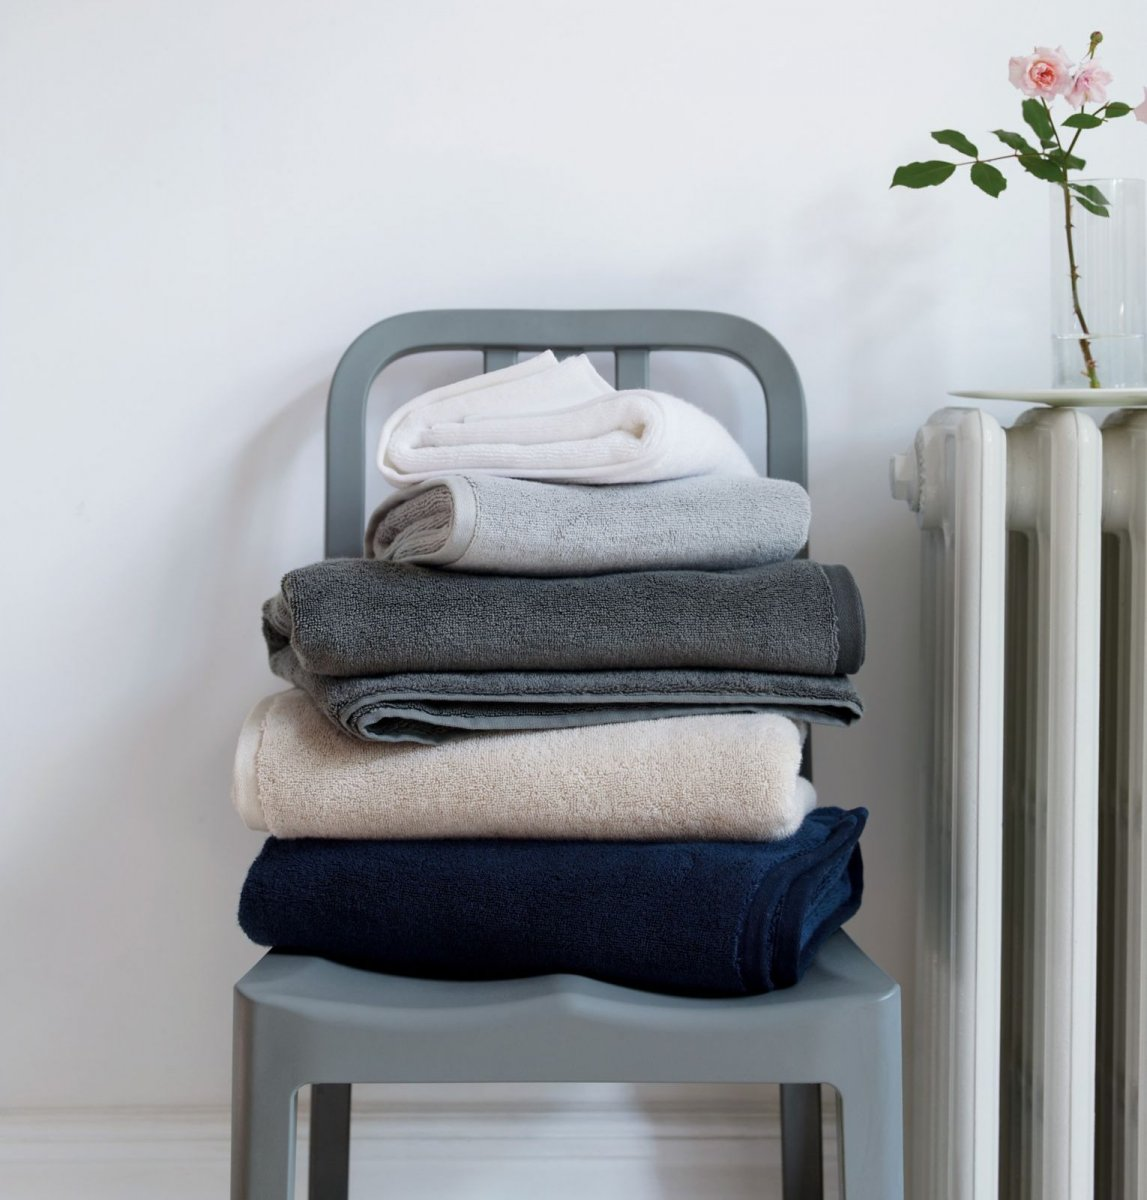 DWR Aerocotton Towels.